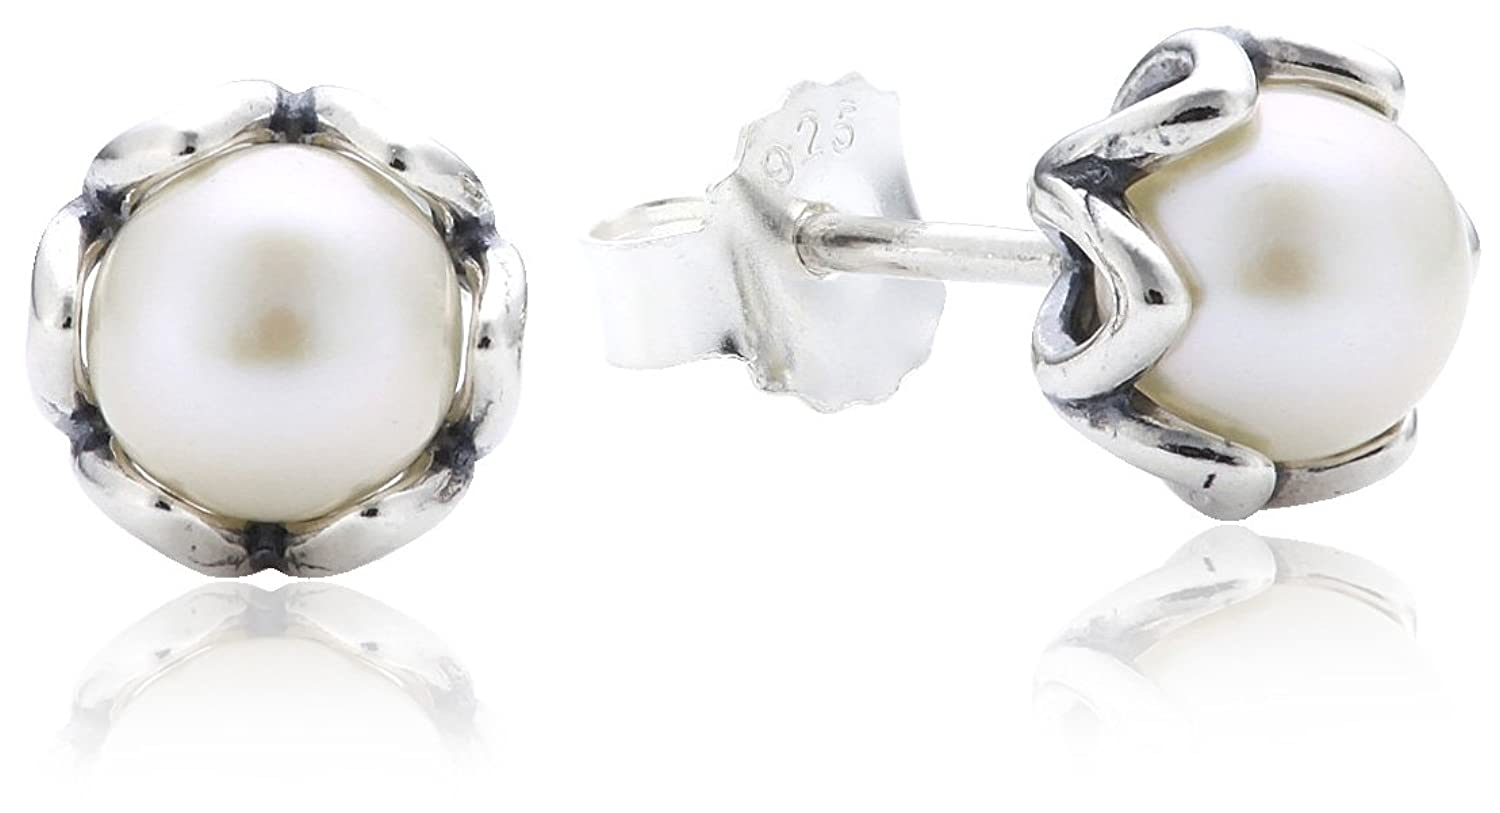 Amazon: Pandora 290533p Earrings White Freshwater Pearl Silver: Jewelry